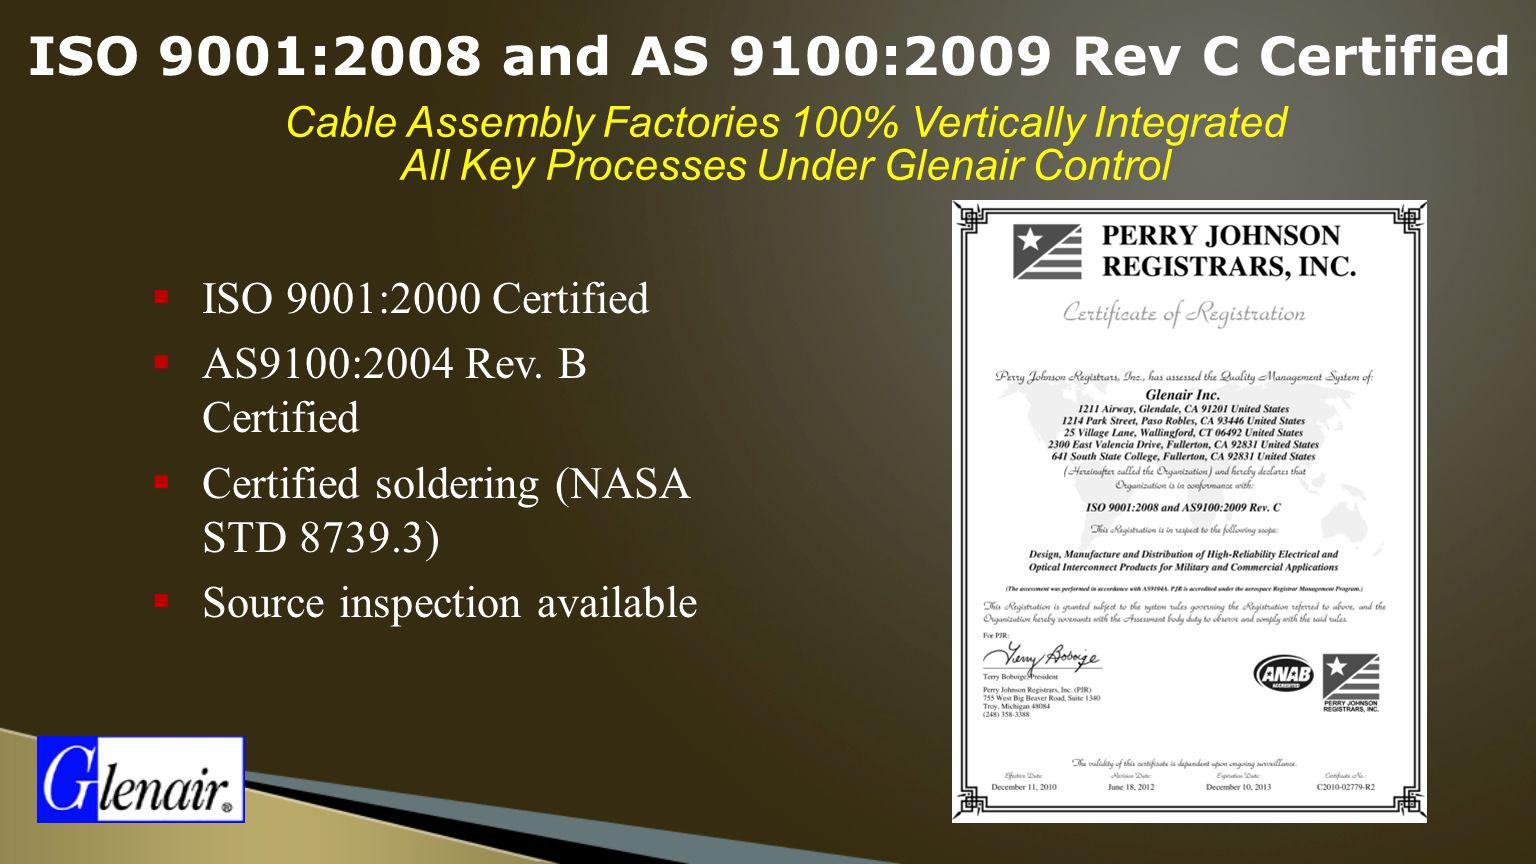 ISO 9001:2008 and AS 9100:2009 Rev C Certified